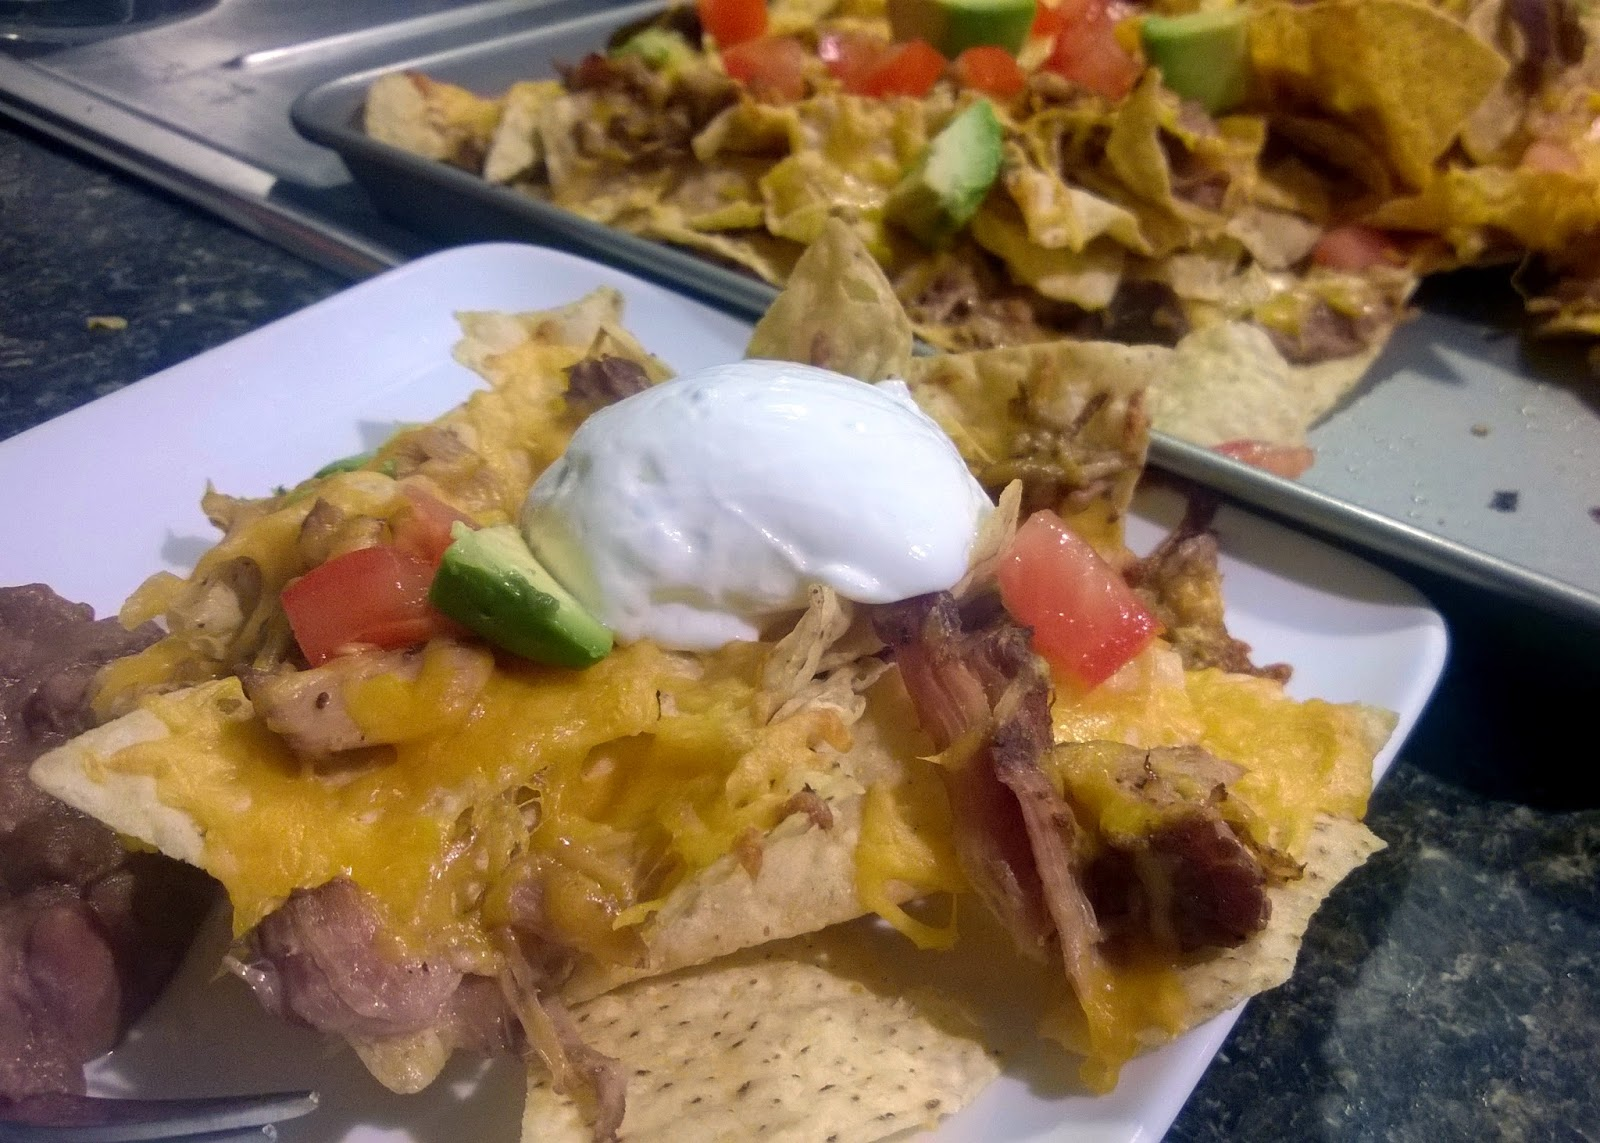 Nachos with pork carnitas